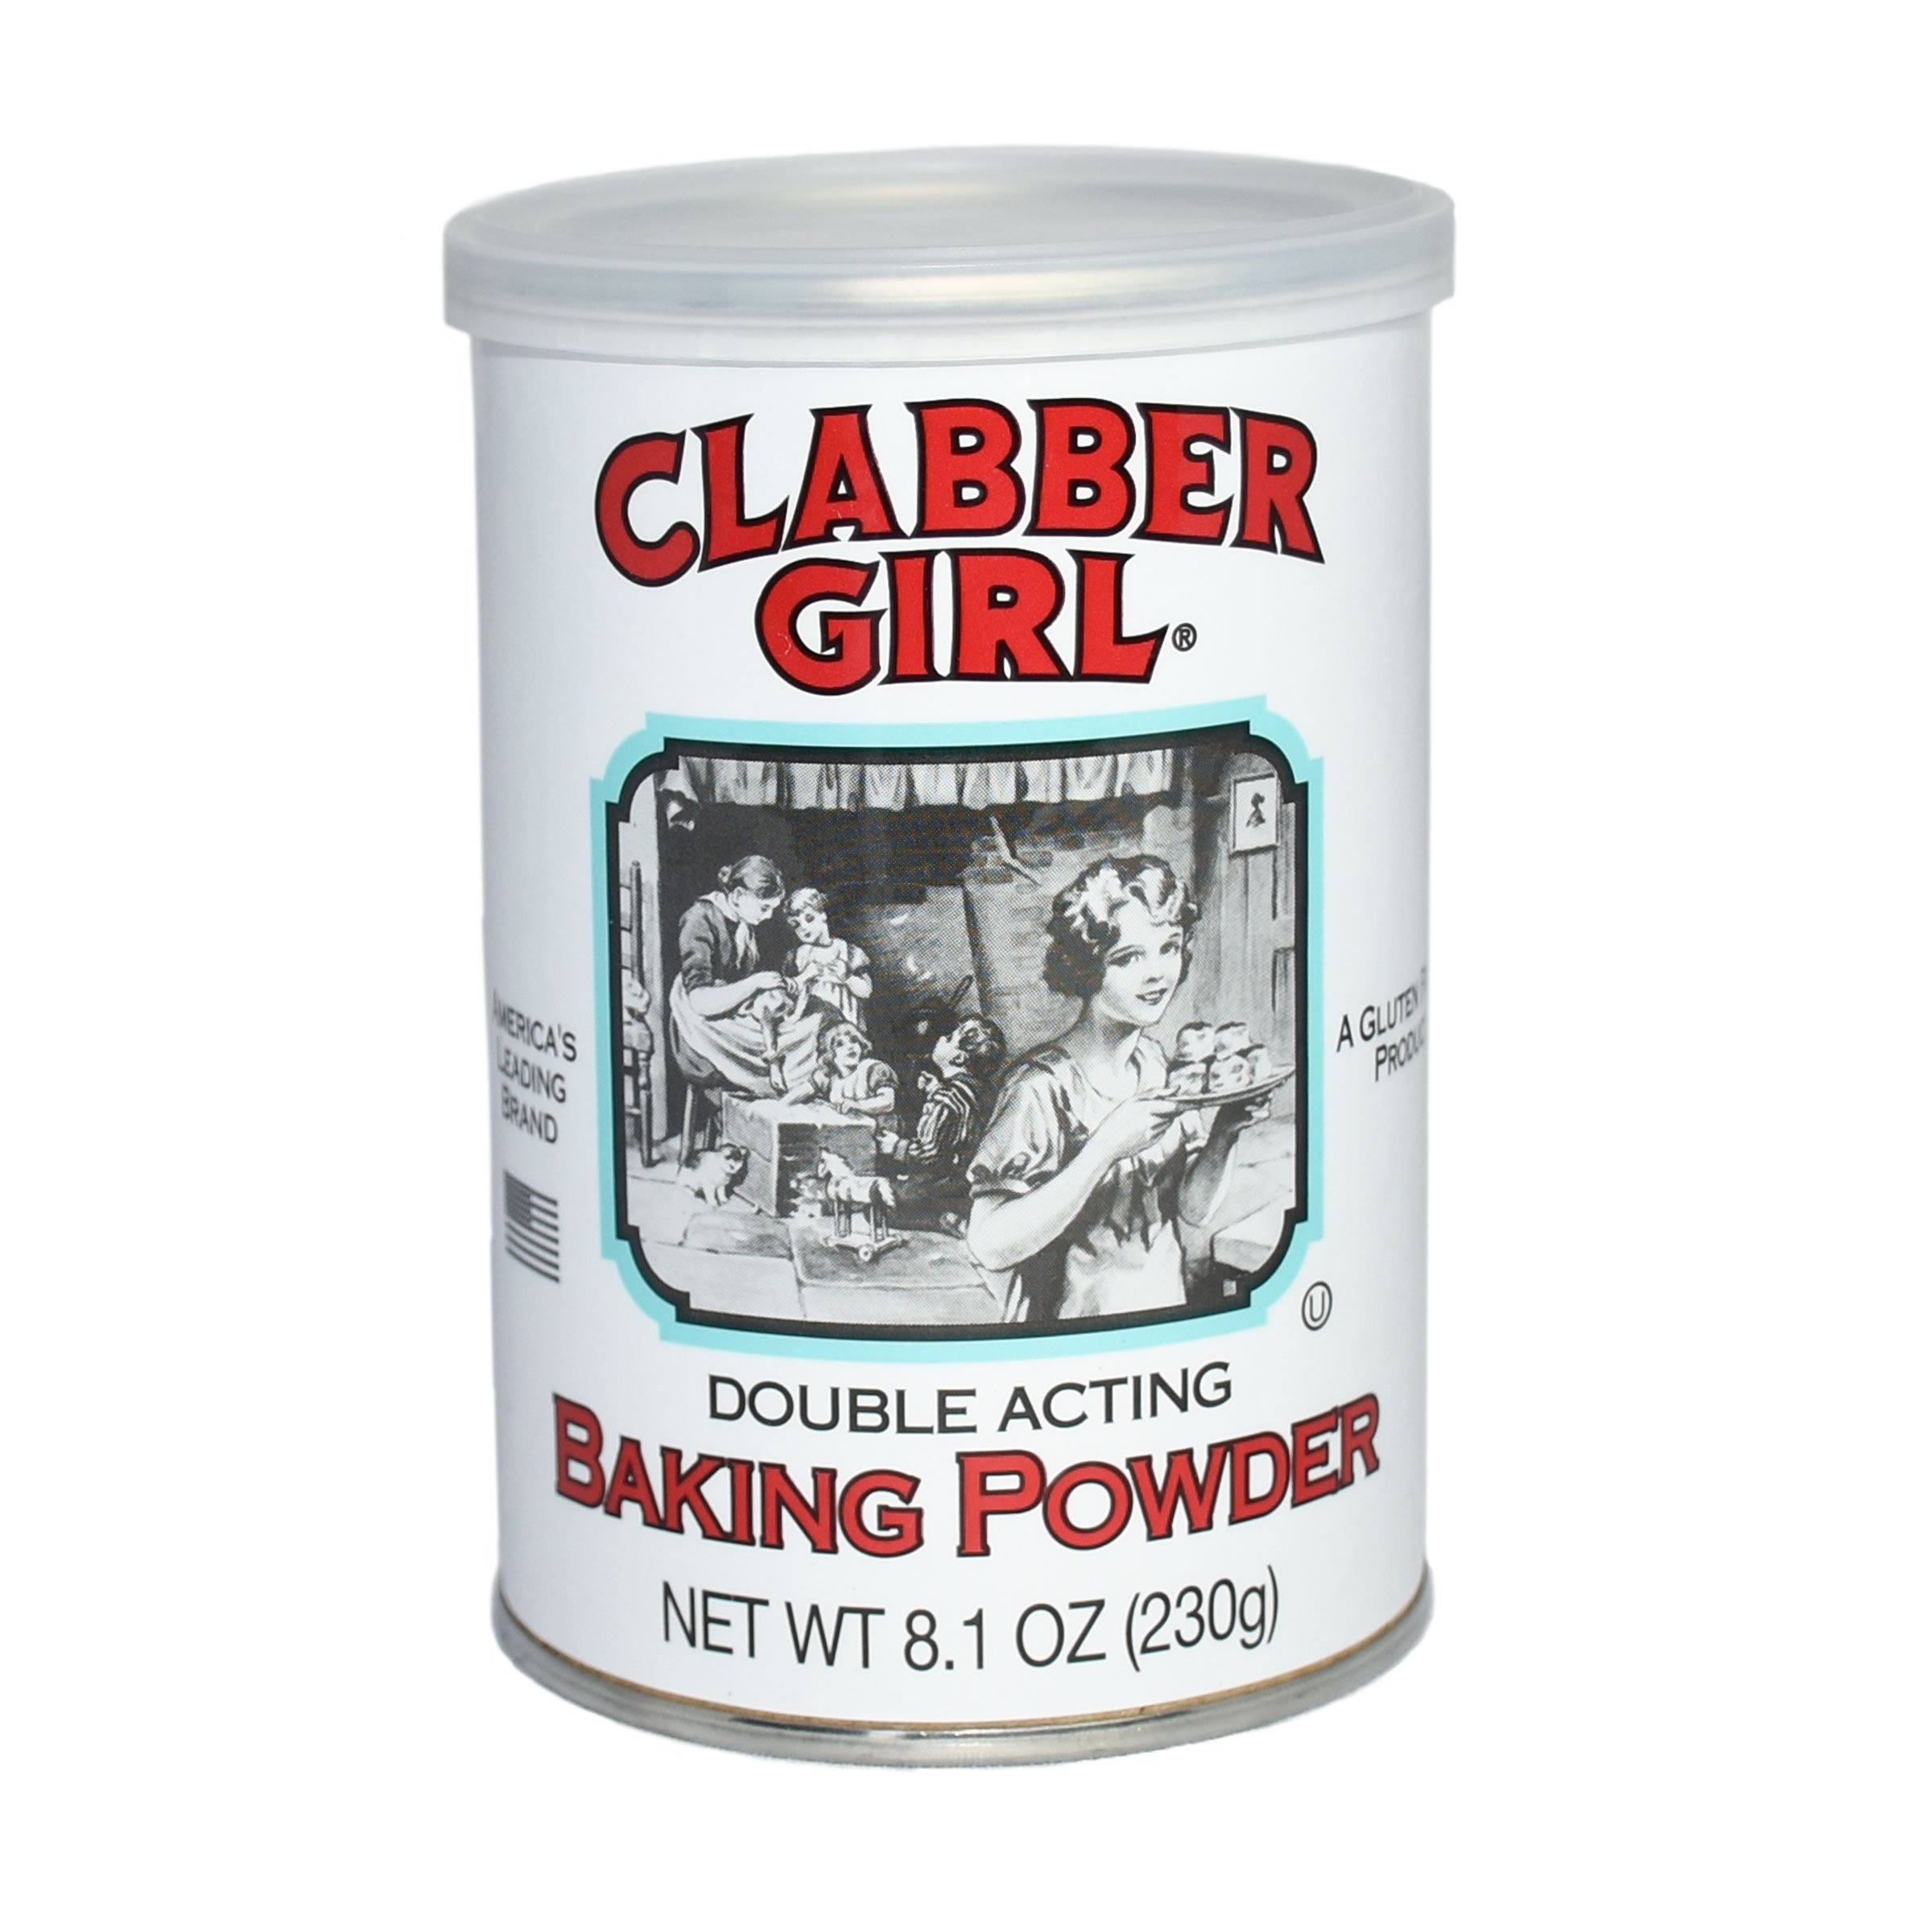 Clabber Girl Baking Powder - Gluten Free Vegan, Vegetarian, Double Acting Baking Powder in a Resealable Can with Easy Measure Lid, Kosher, Halal